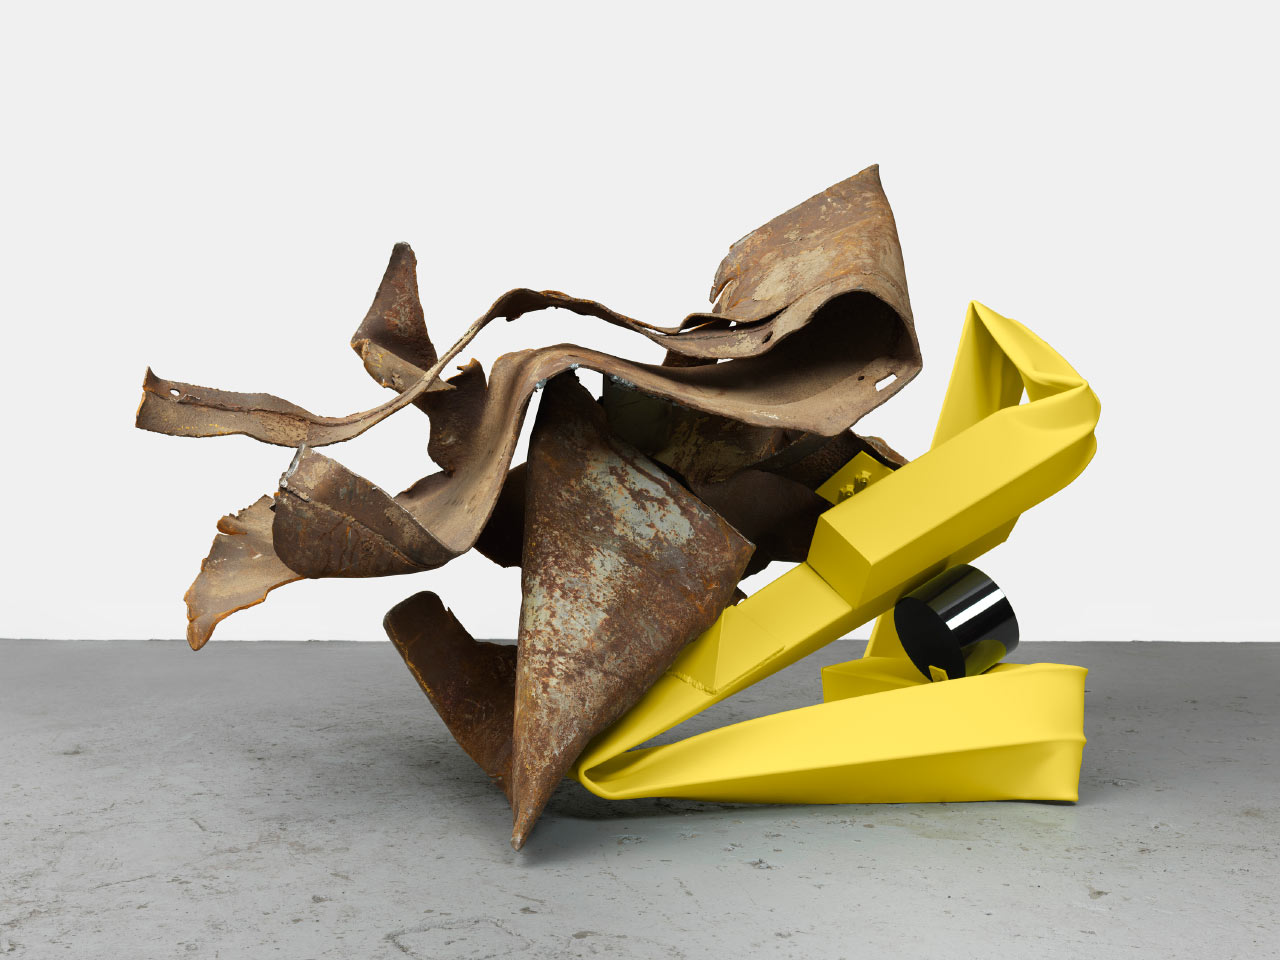 Crushed Harmony: The Sculpture of Carol Bove